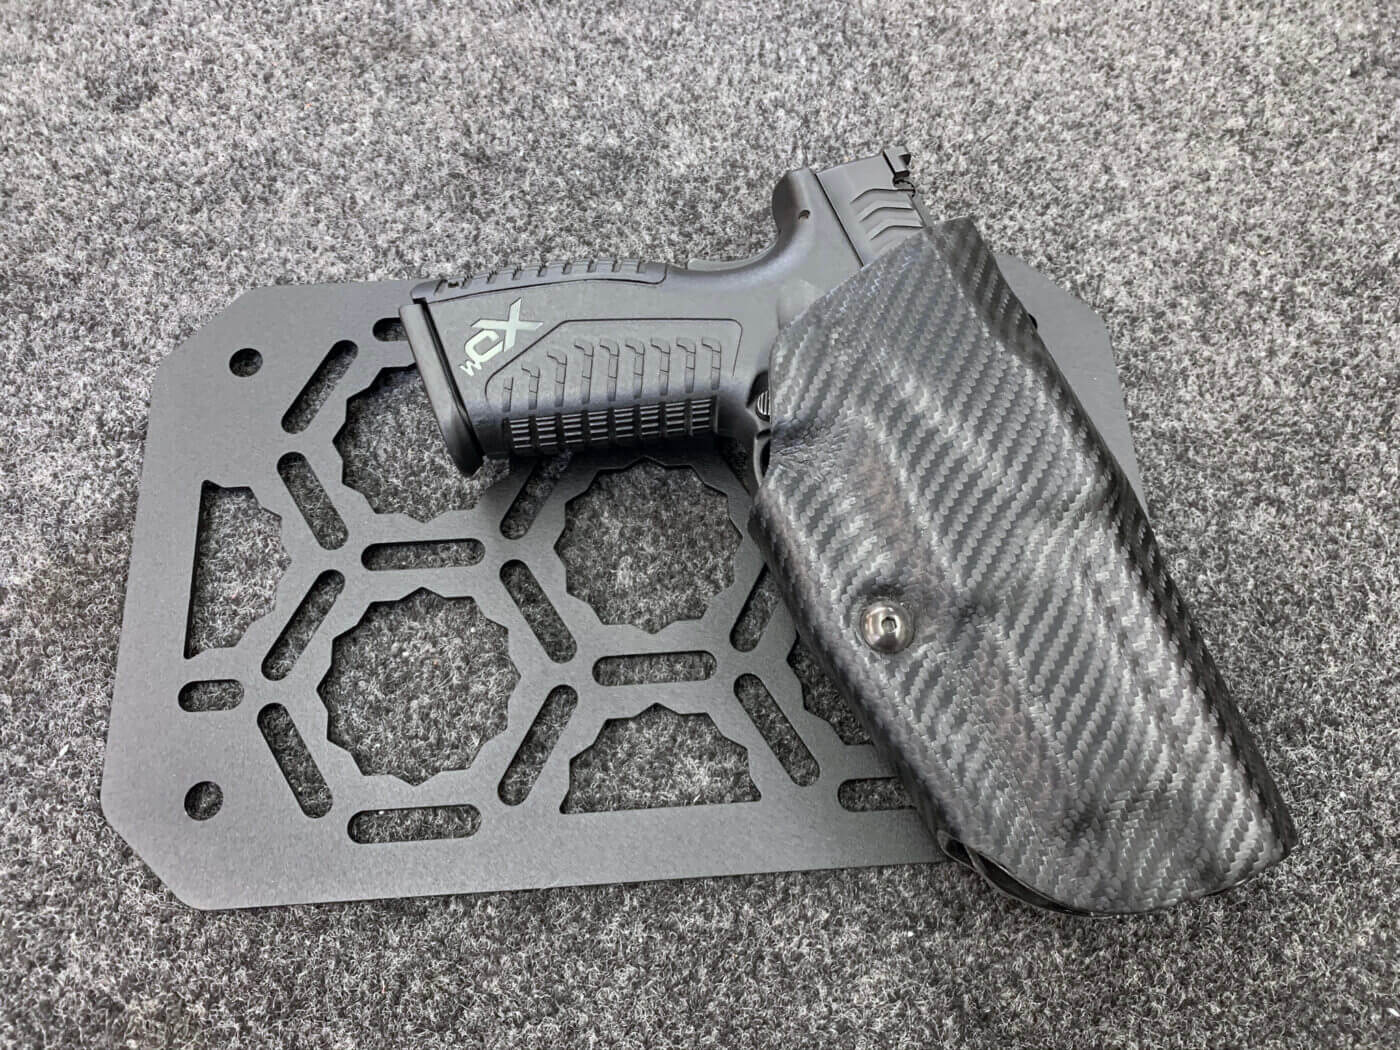 Mounting a holster to the Adapt-A-Panel